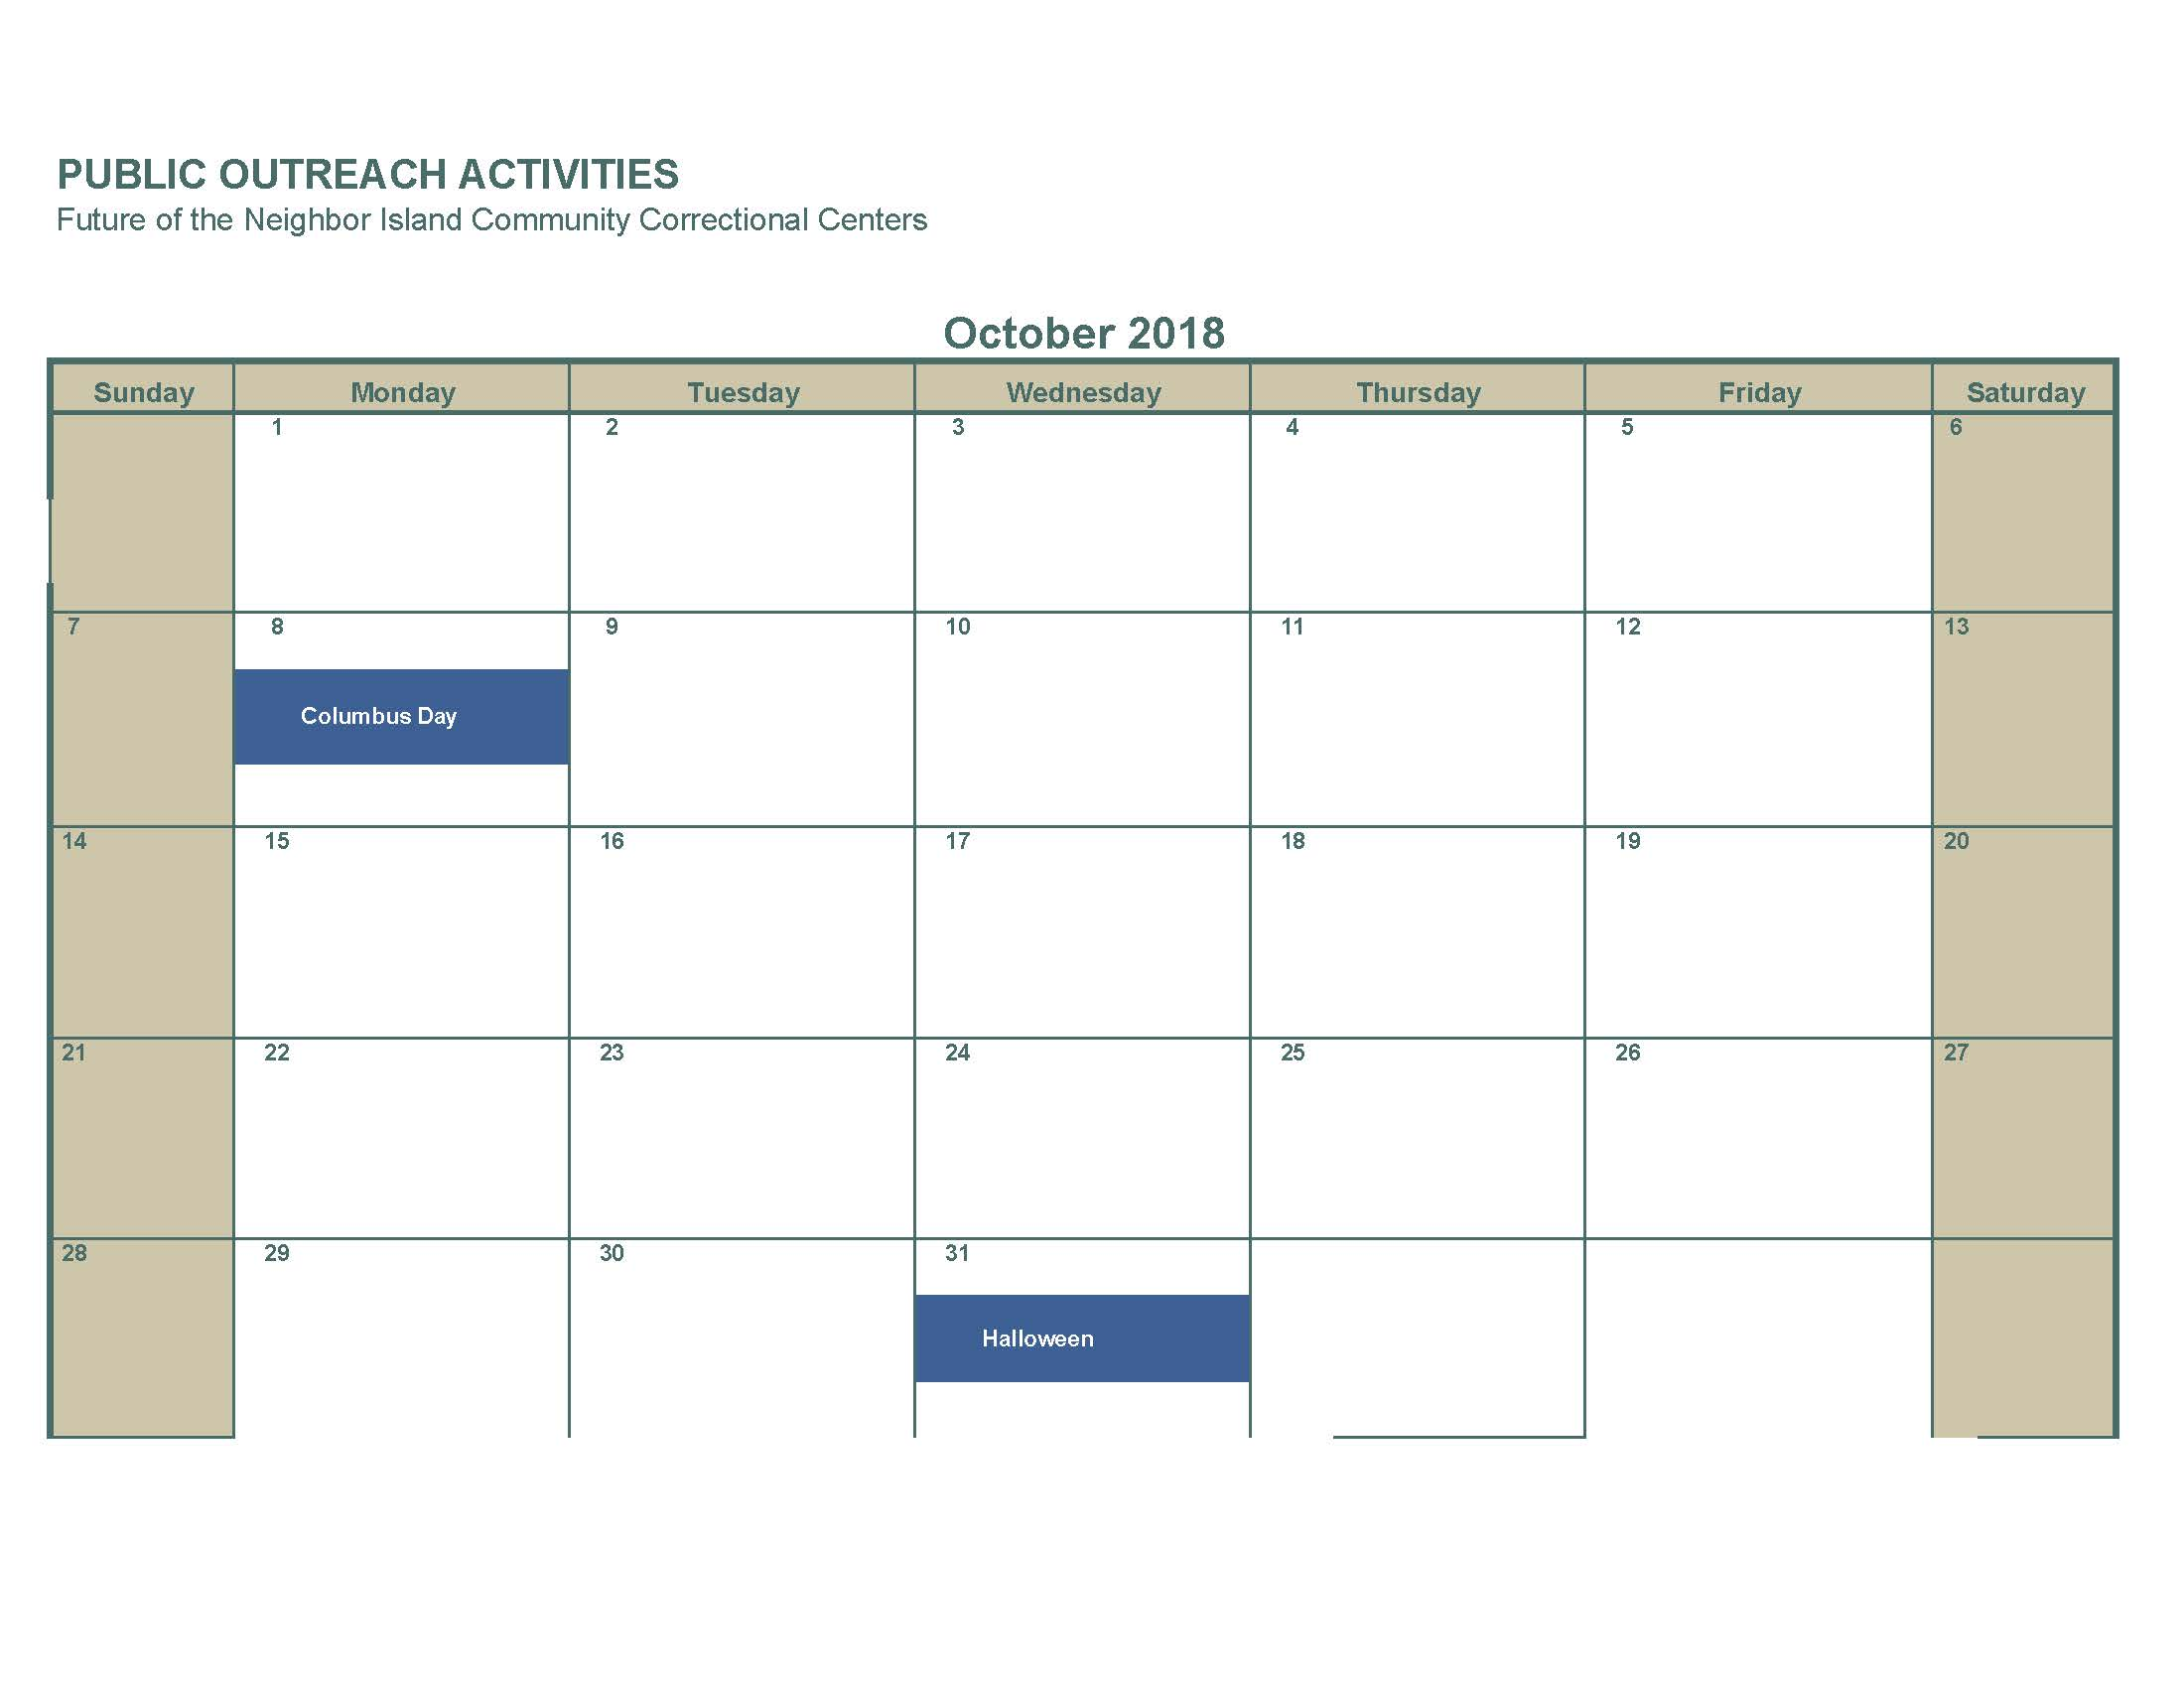 October 2018 No activities